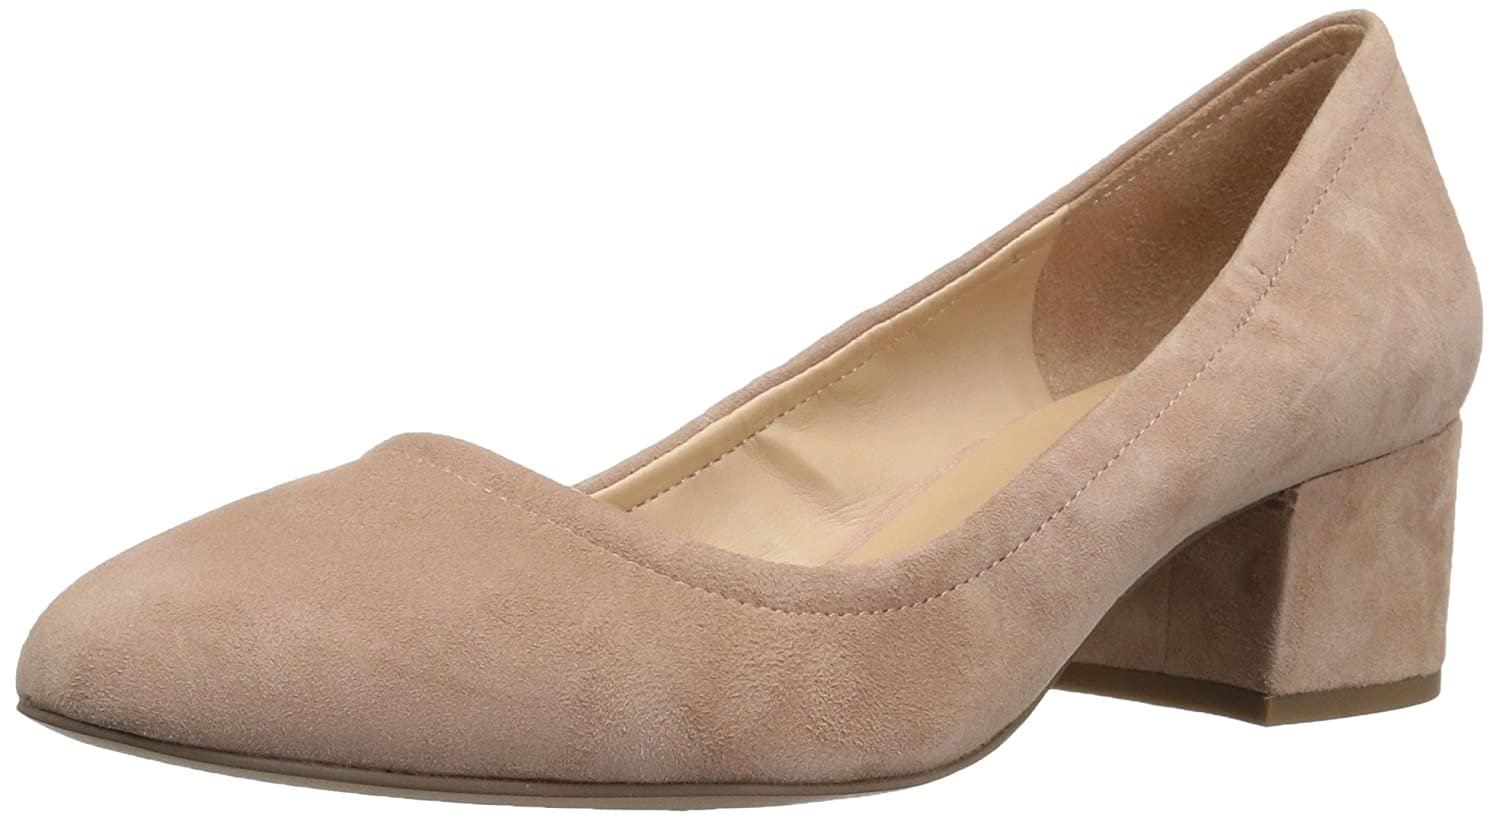 Franco Sarto Women's Fausta Pump B06XRMWWKN 7 B(M) US|Adobe Rose